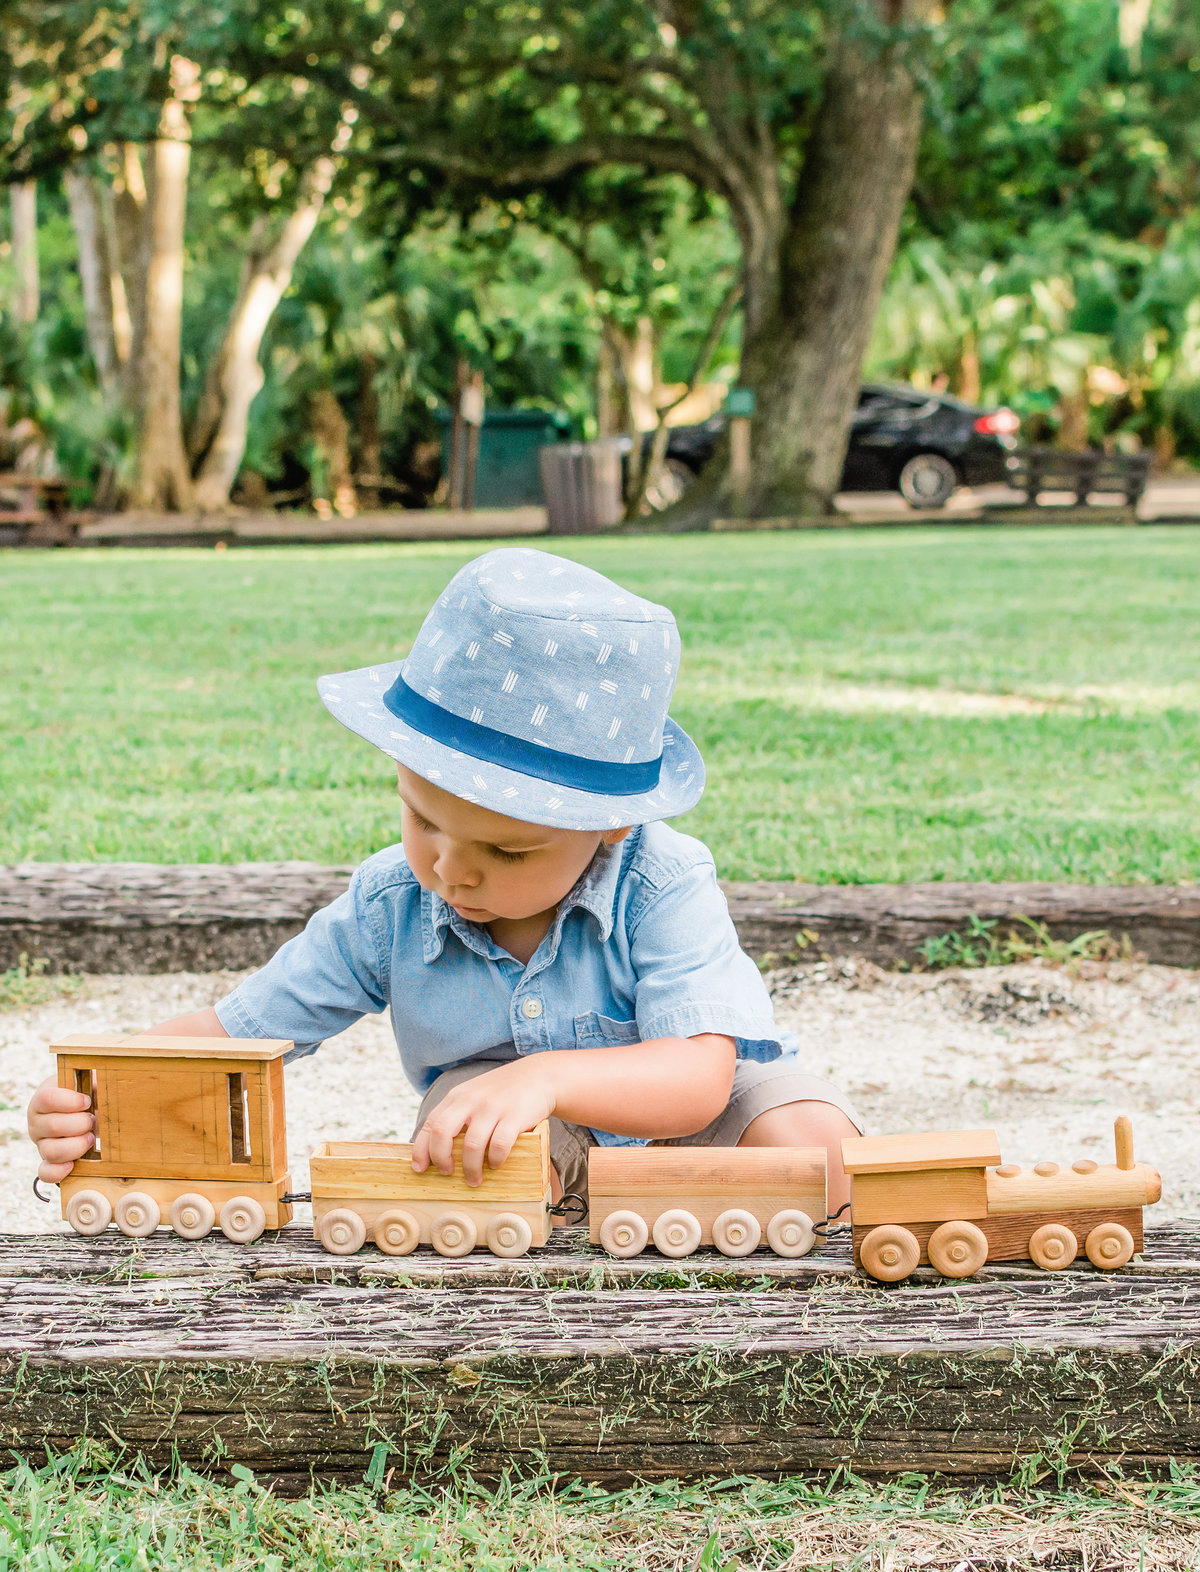 Howell_Park_Toddler_Trains_01